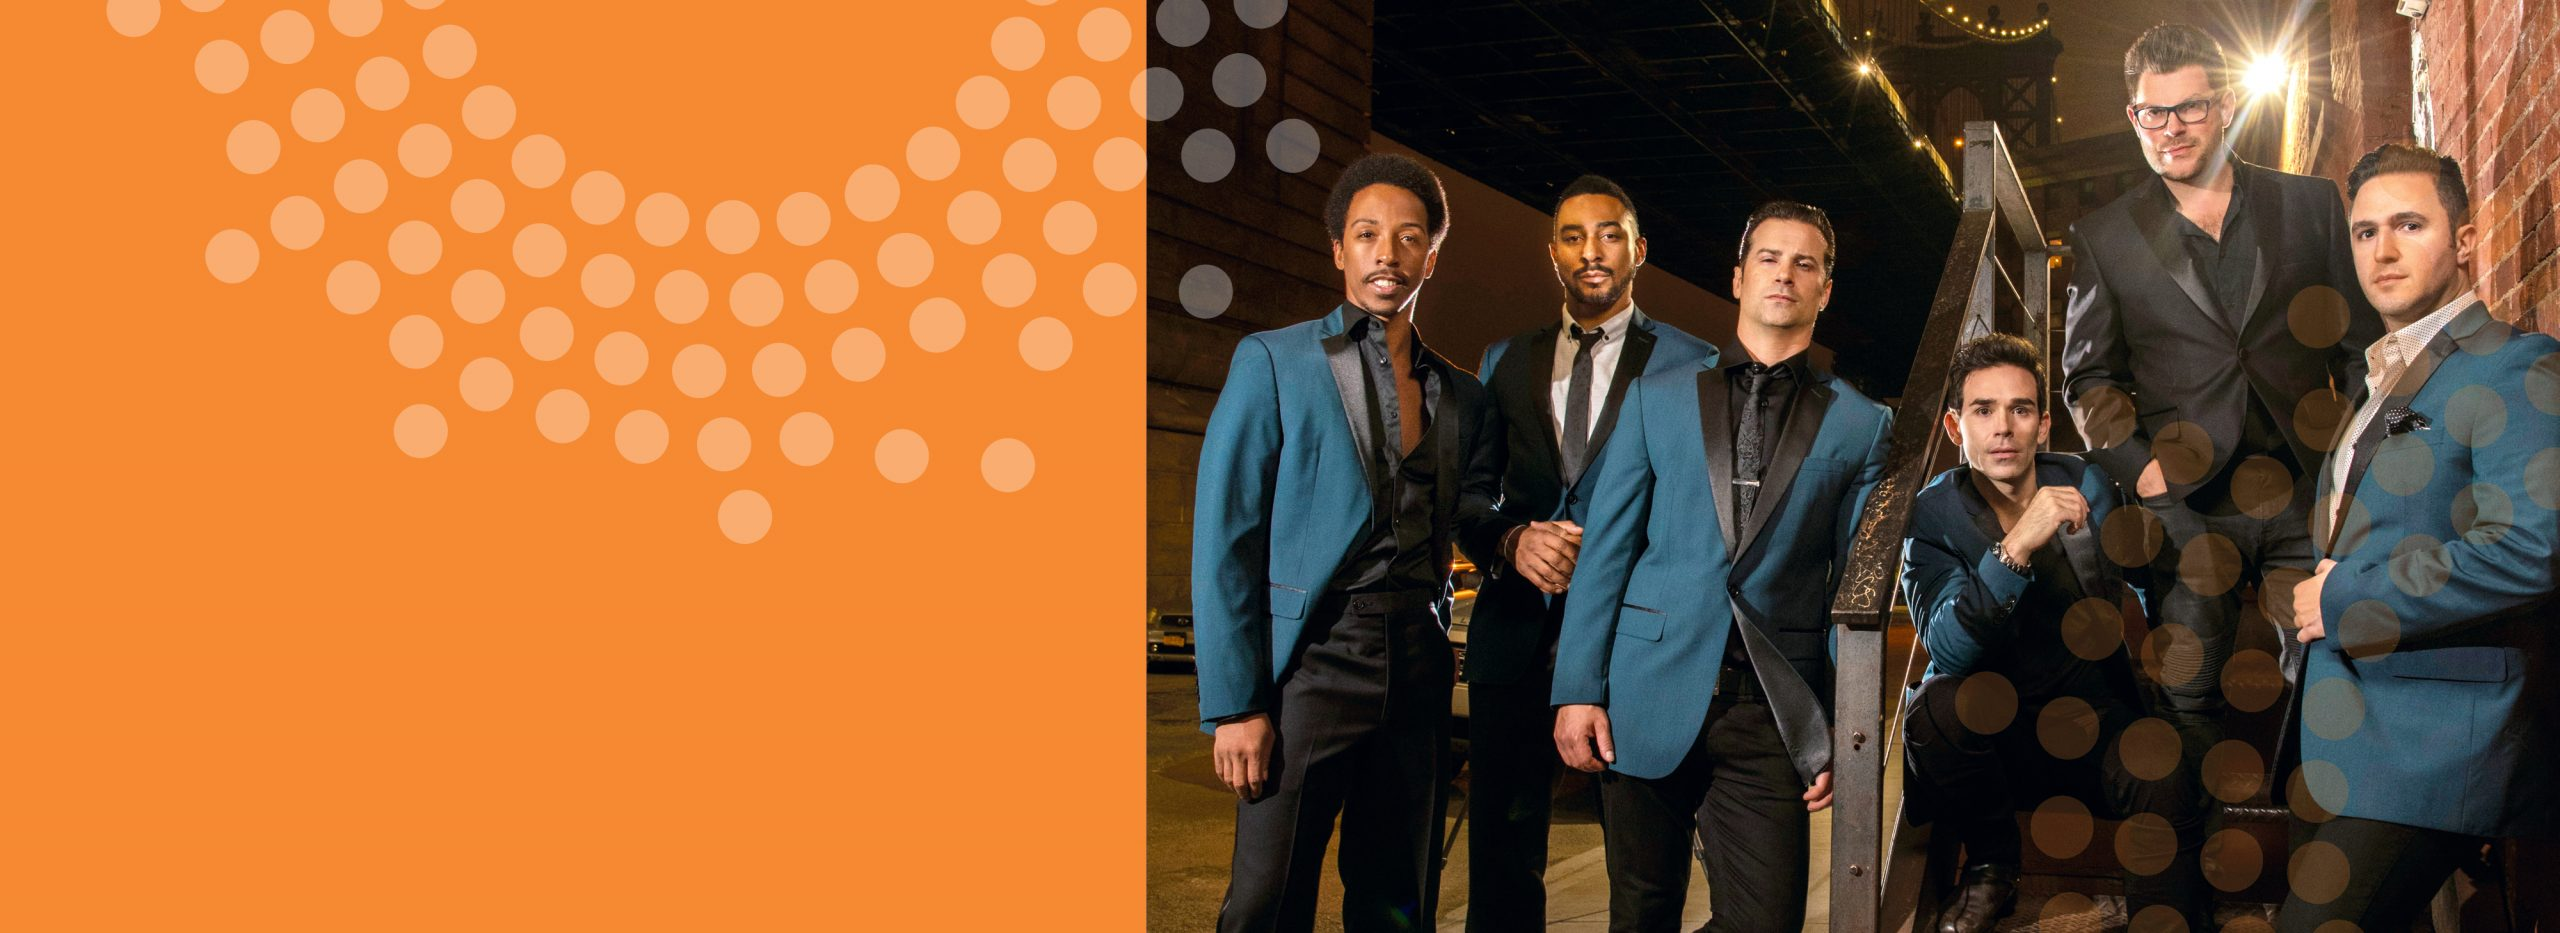 CANCELED: The Doo Wop Project